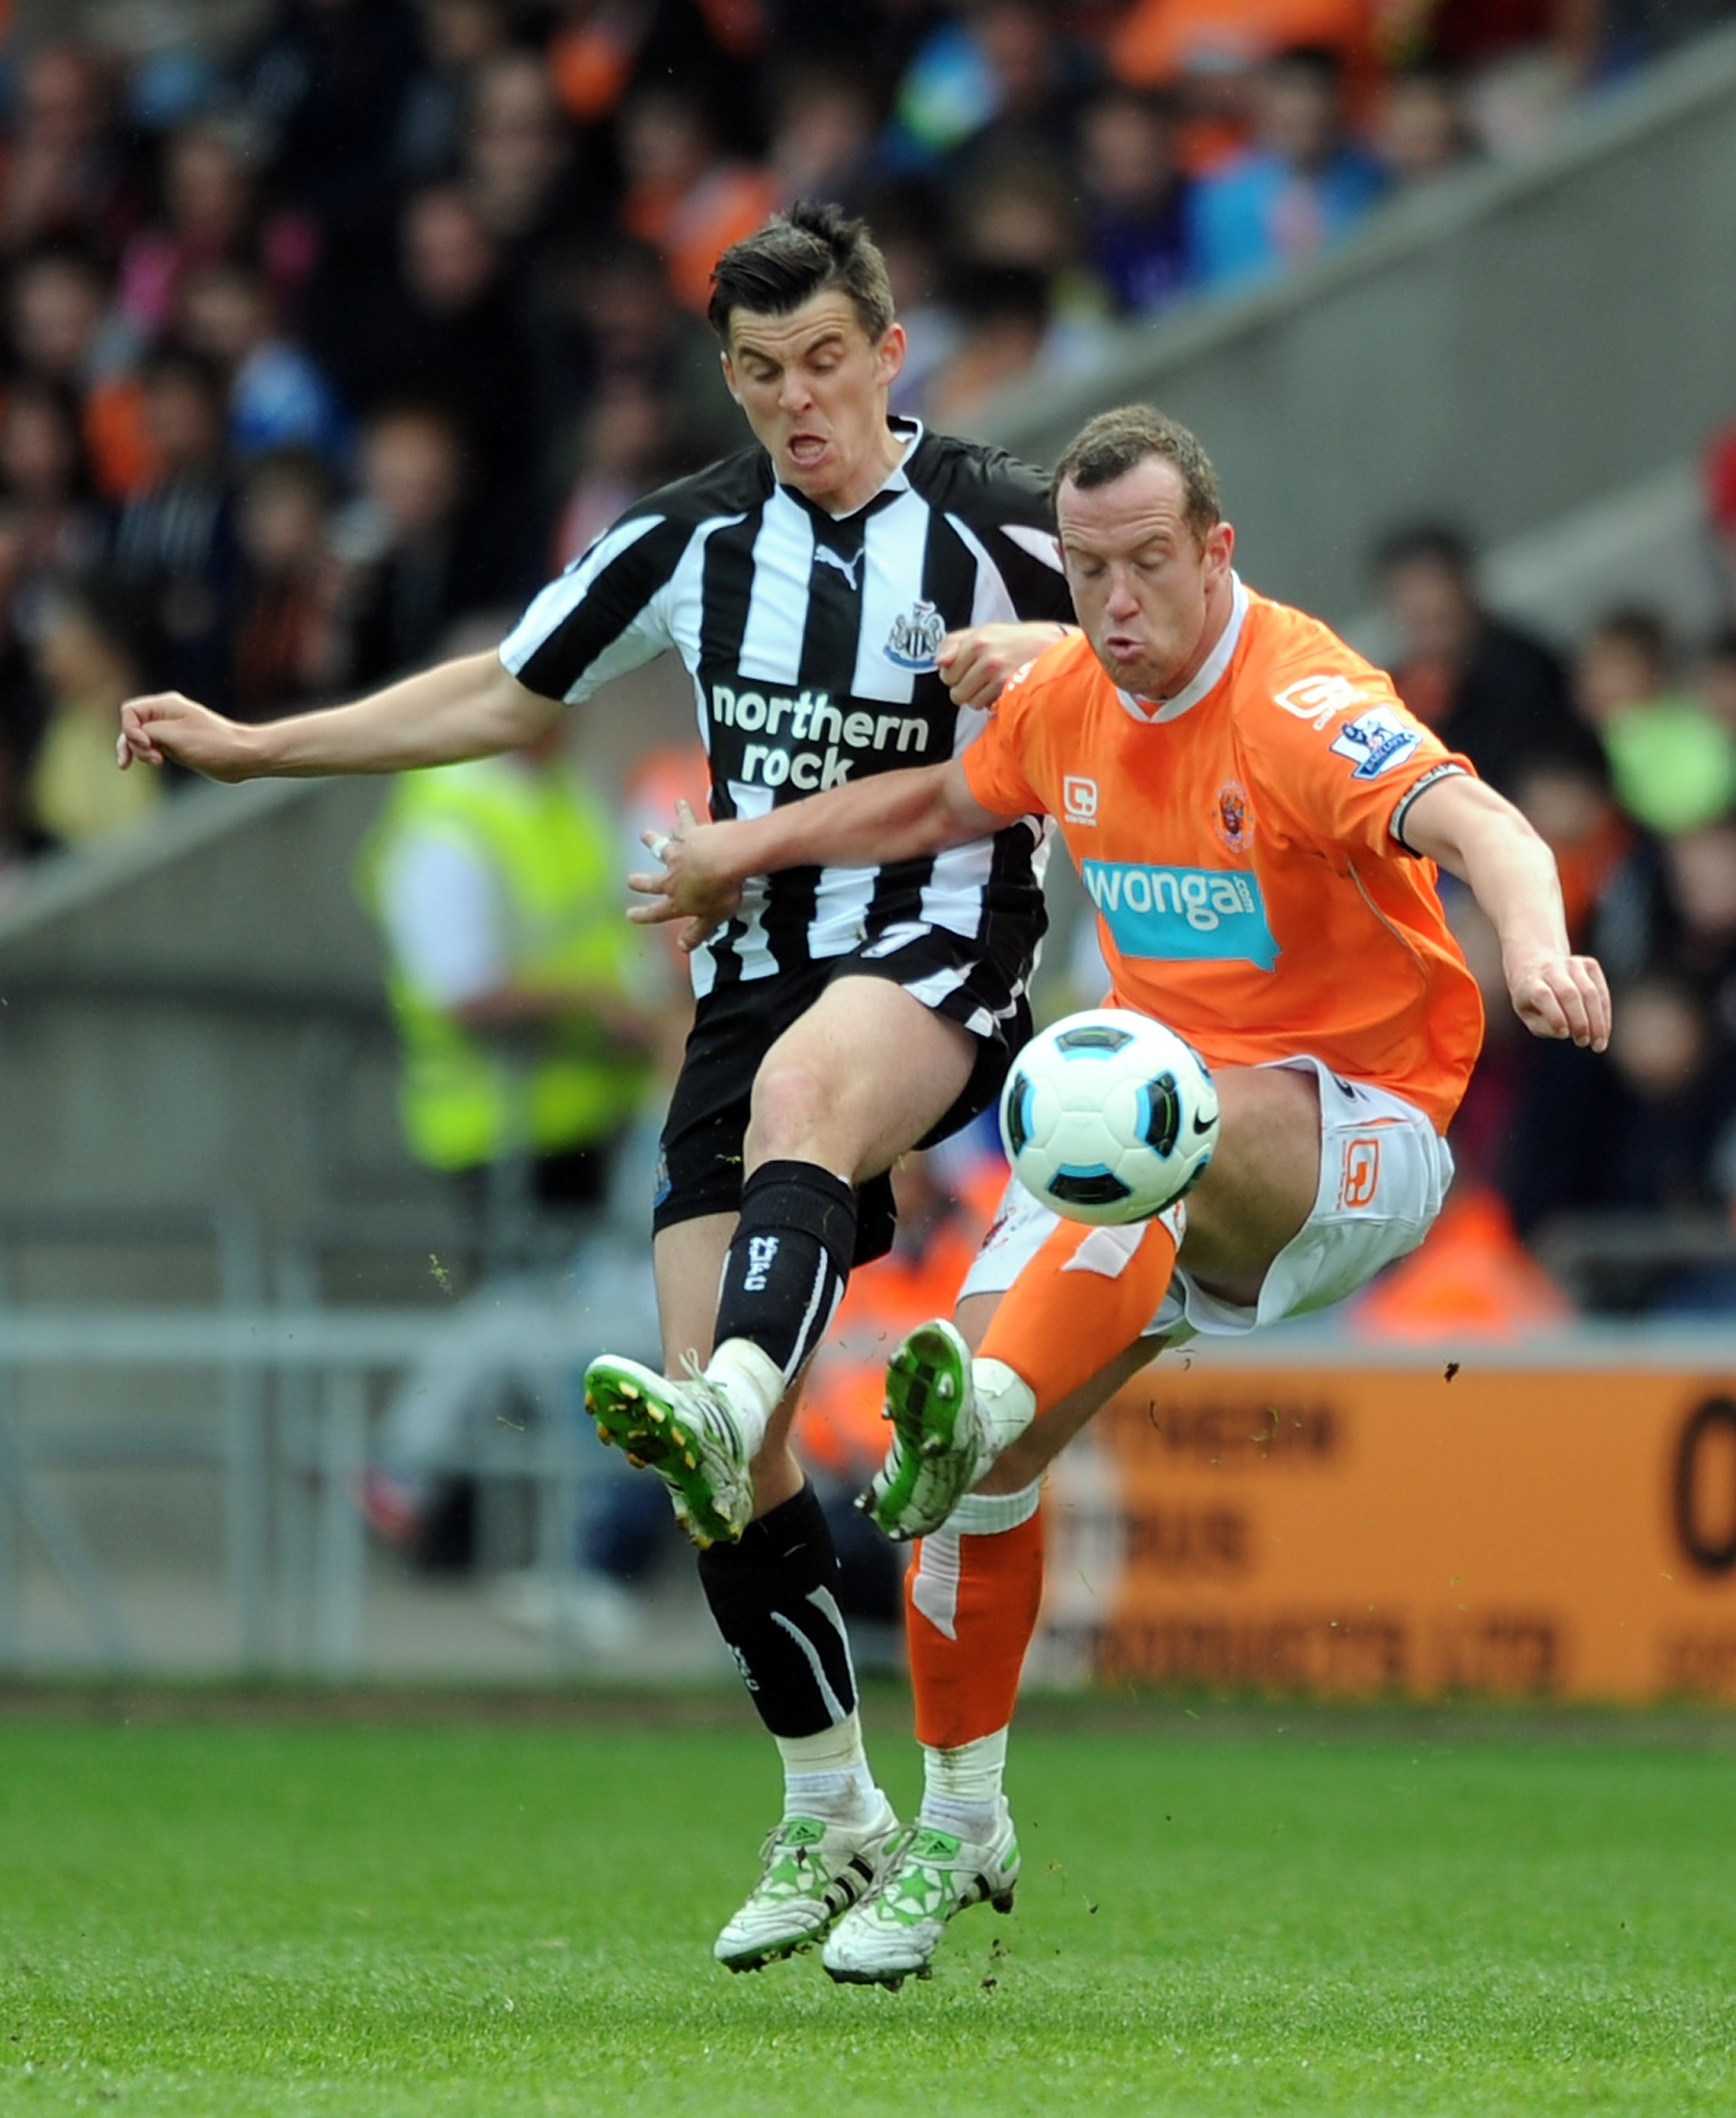 BLACKPOOL, ENGLAND - APRIL 23: Charlie Adam of Blackpool competes with Joey Barton of Newcastle United during the Barclays Premier League match between Blackpool and Newcastle United at Bloomfield Road on April 23, 2011 in Blackpool, England.  (Photo by C